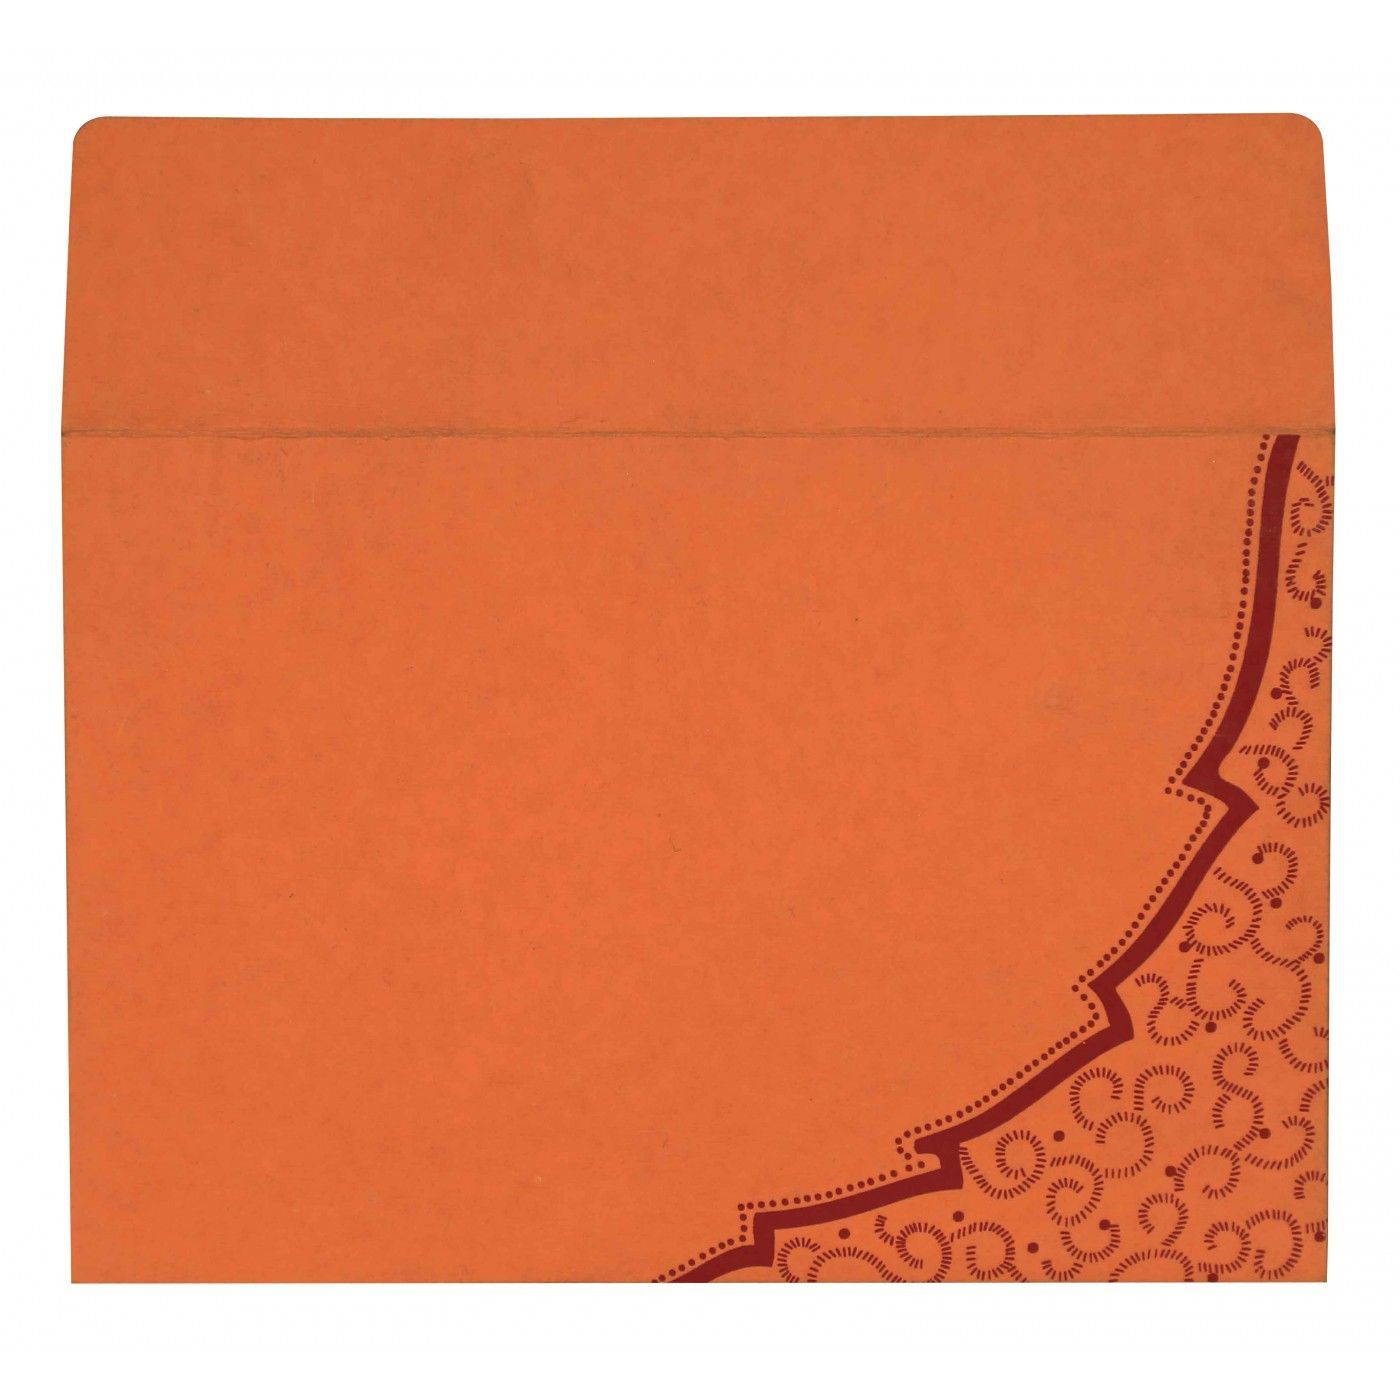 ORANGE HANDMADE COTTON FLORAL THEMED - FOIL STAMPED WEDDING CARD : CRU-8219B - IndianWeddingCards